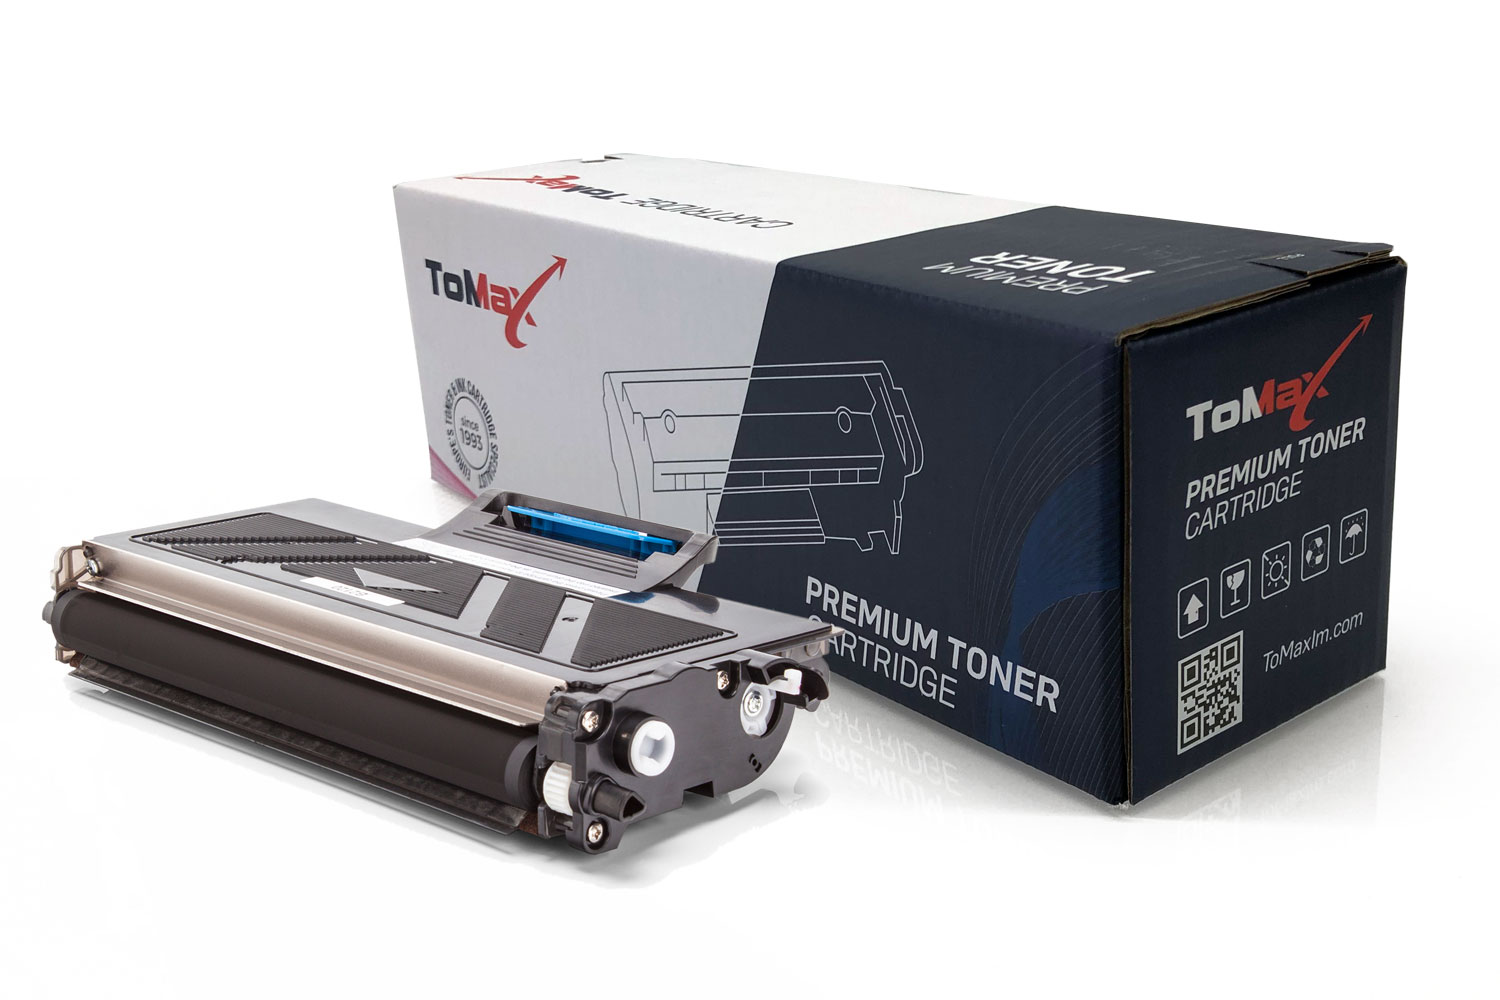 ToMax Premium Toner Cartridge replaces HP CE311A / 126A Cyan